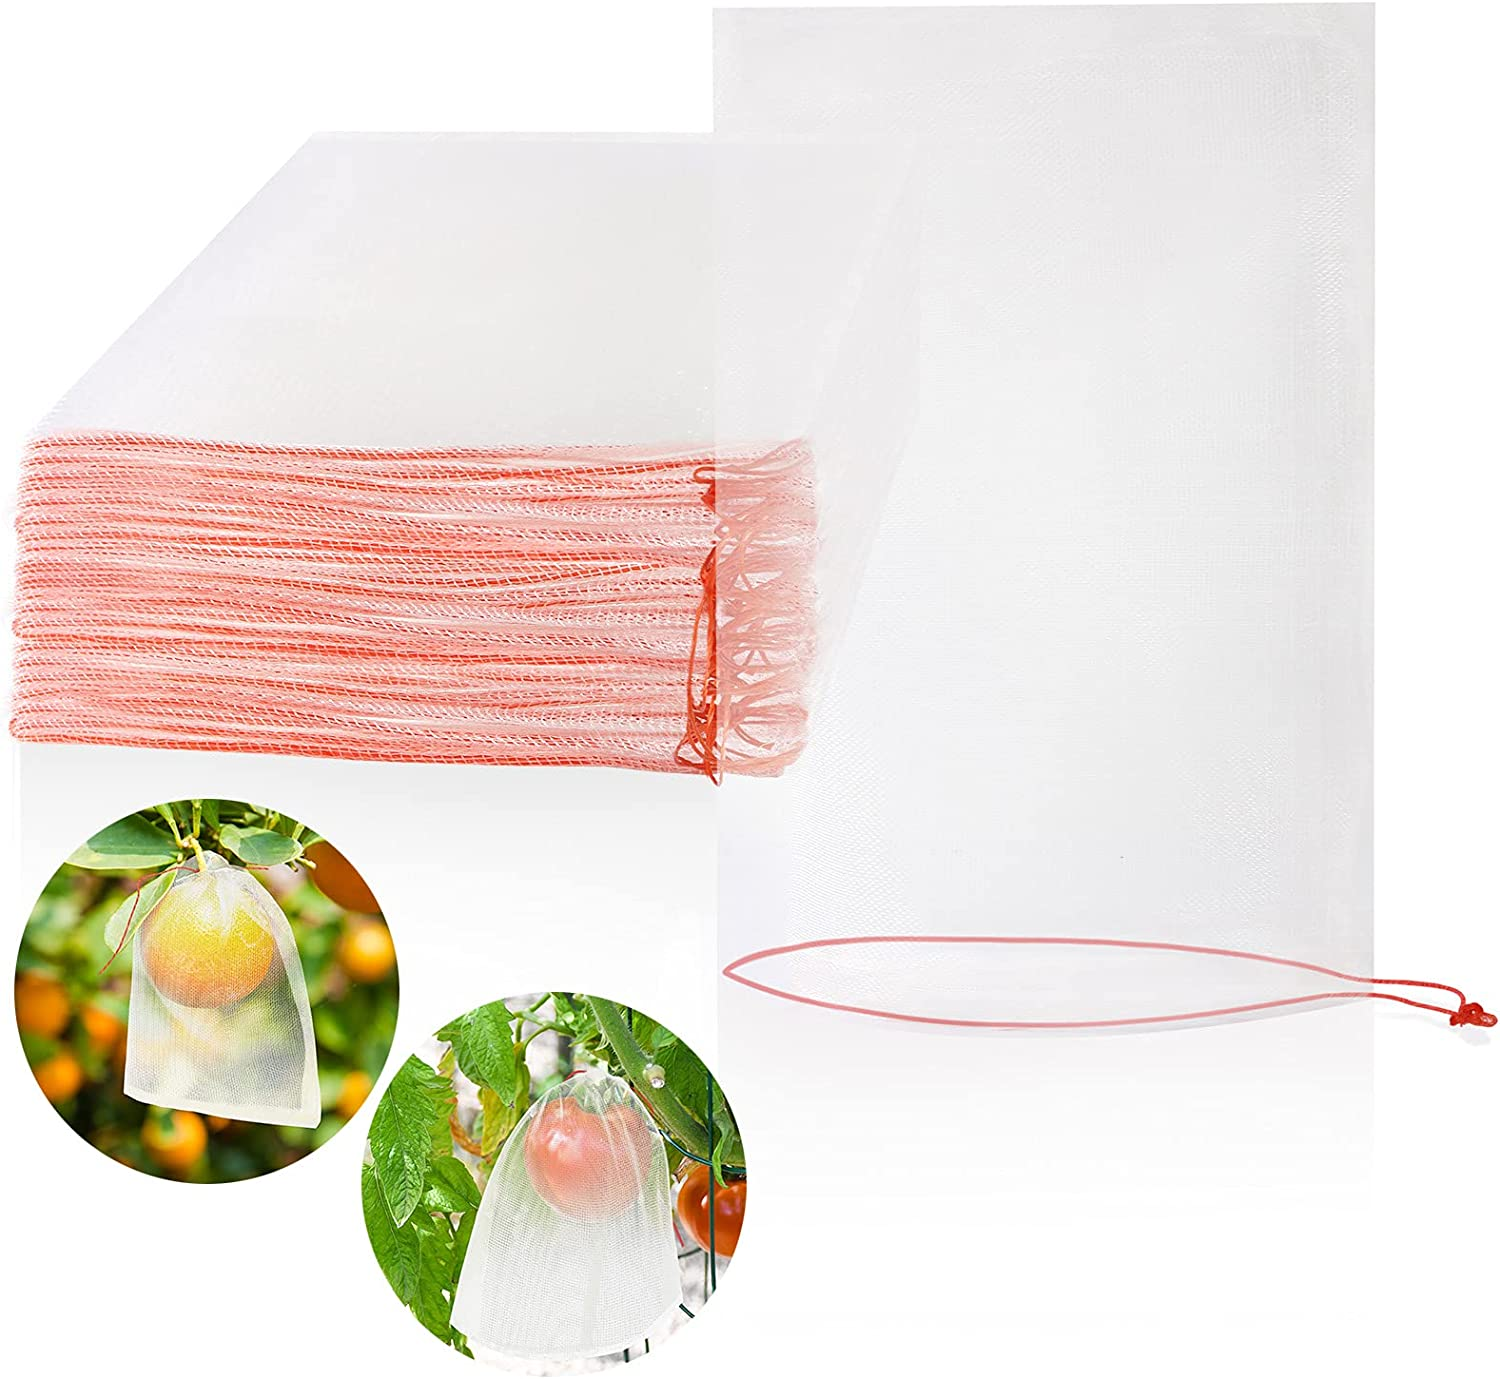 MIKIMIQI Fruit Protection Bags 25 Animer and price revision Pcs Net X10 New product type Nylon Inch Barr 6